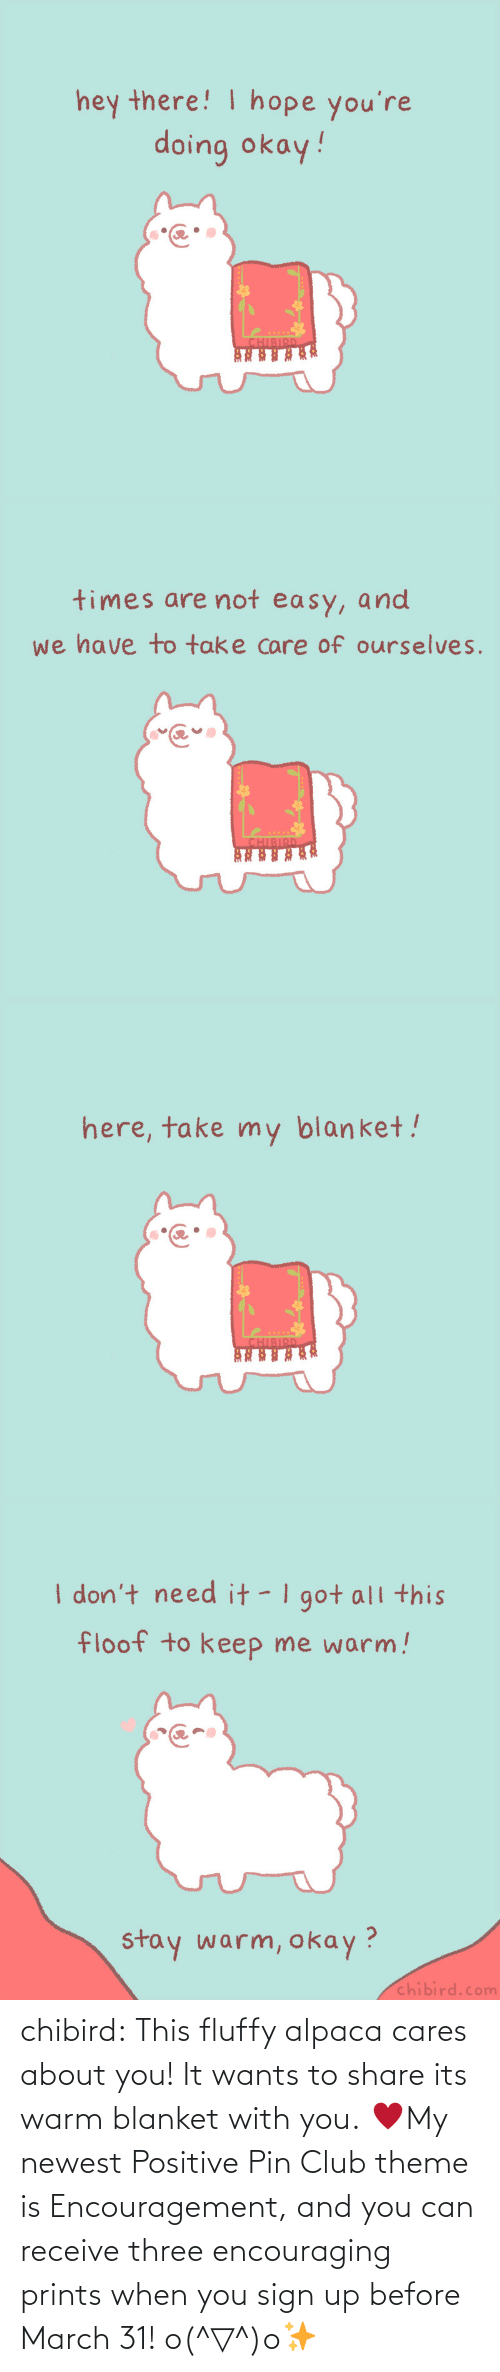 march: chibird:  This fluffy alpaca cares about you! It wants to share its warm blanket with you. ♥My newest Positive Pin Club theme is Encouragement, and you can receive three encouraging prints when you sign up before March 31! o(^▽^)o✨